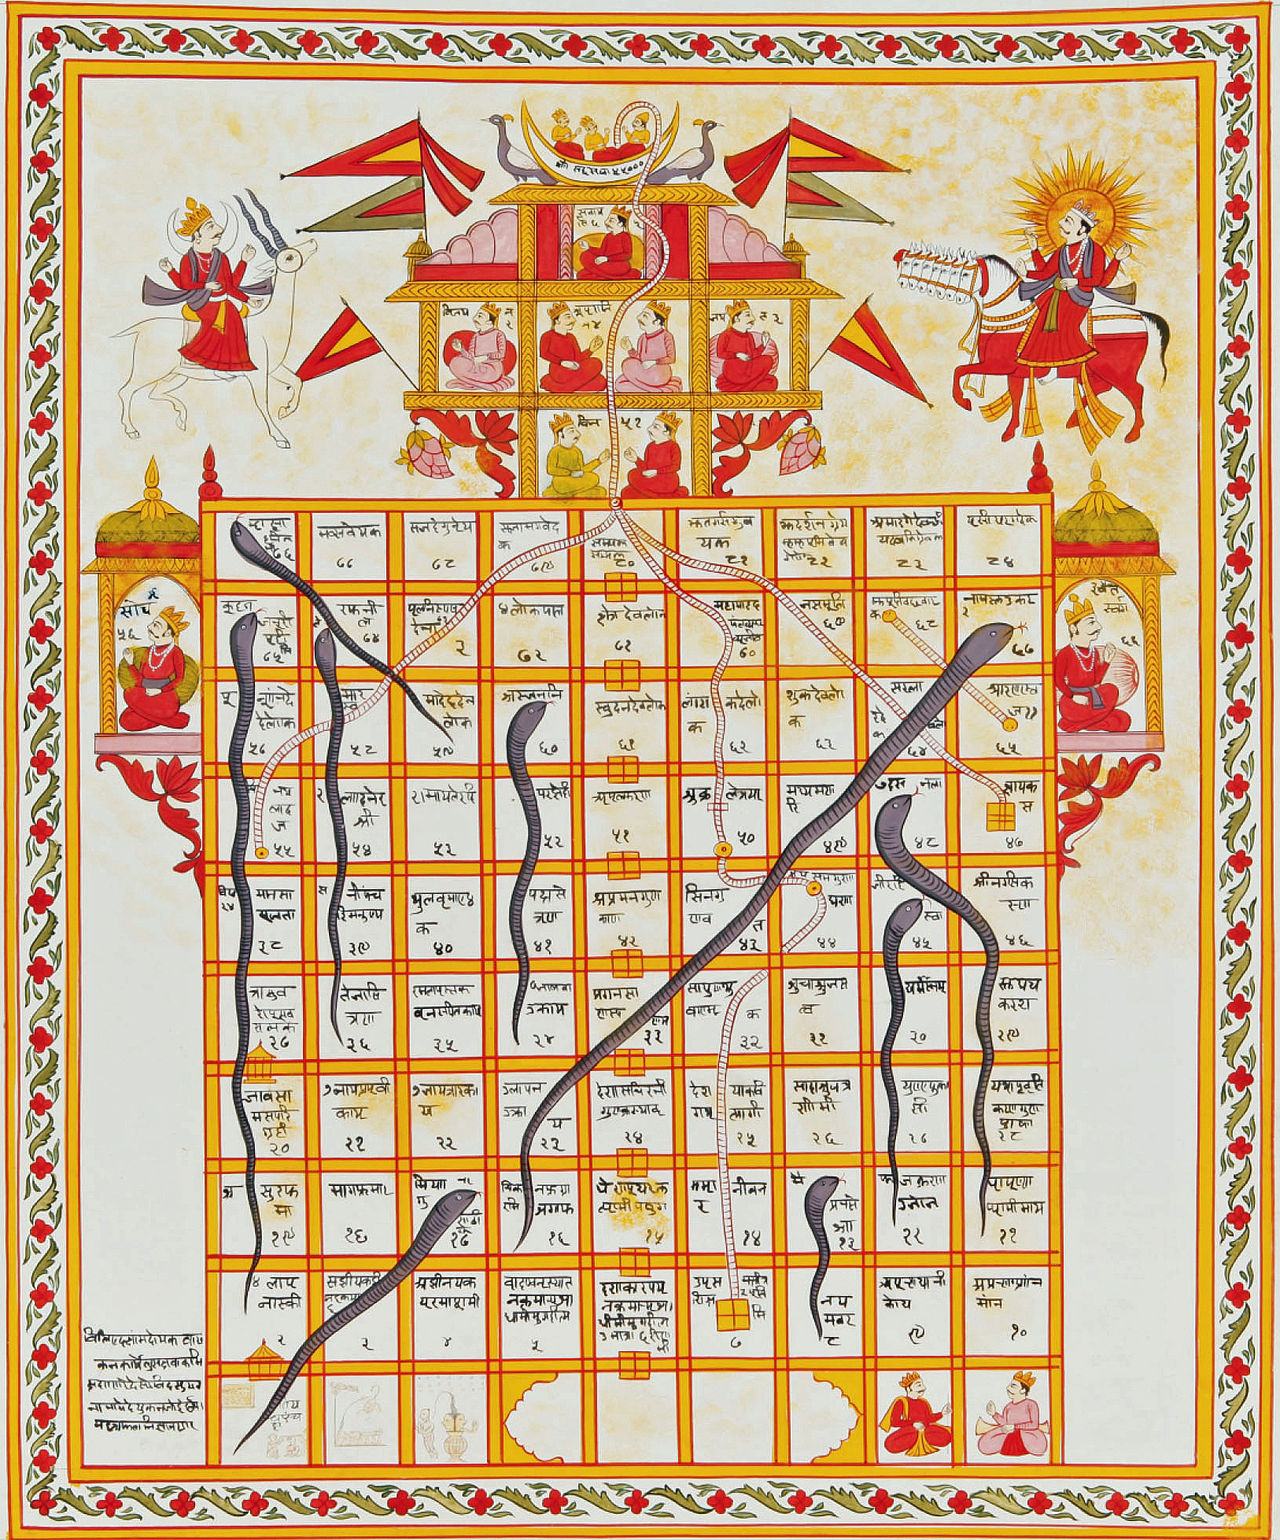 The Road to Nirvana is Paved with Snakes (and Ladders)